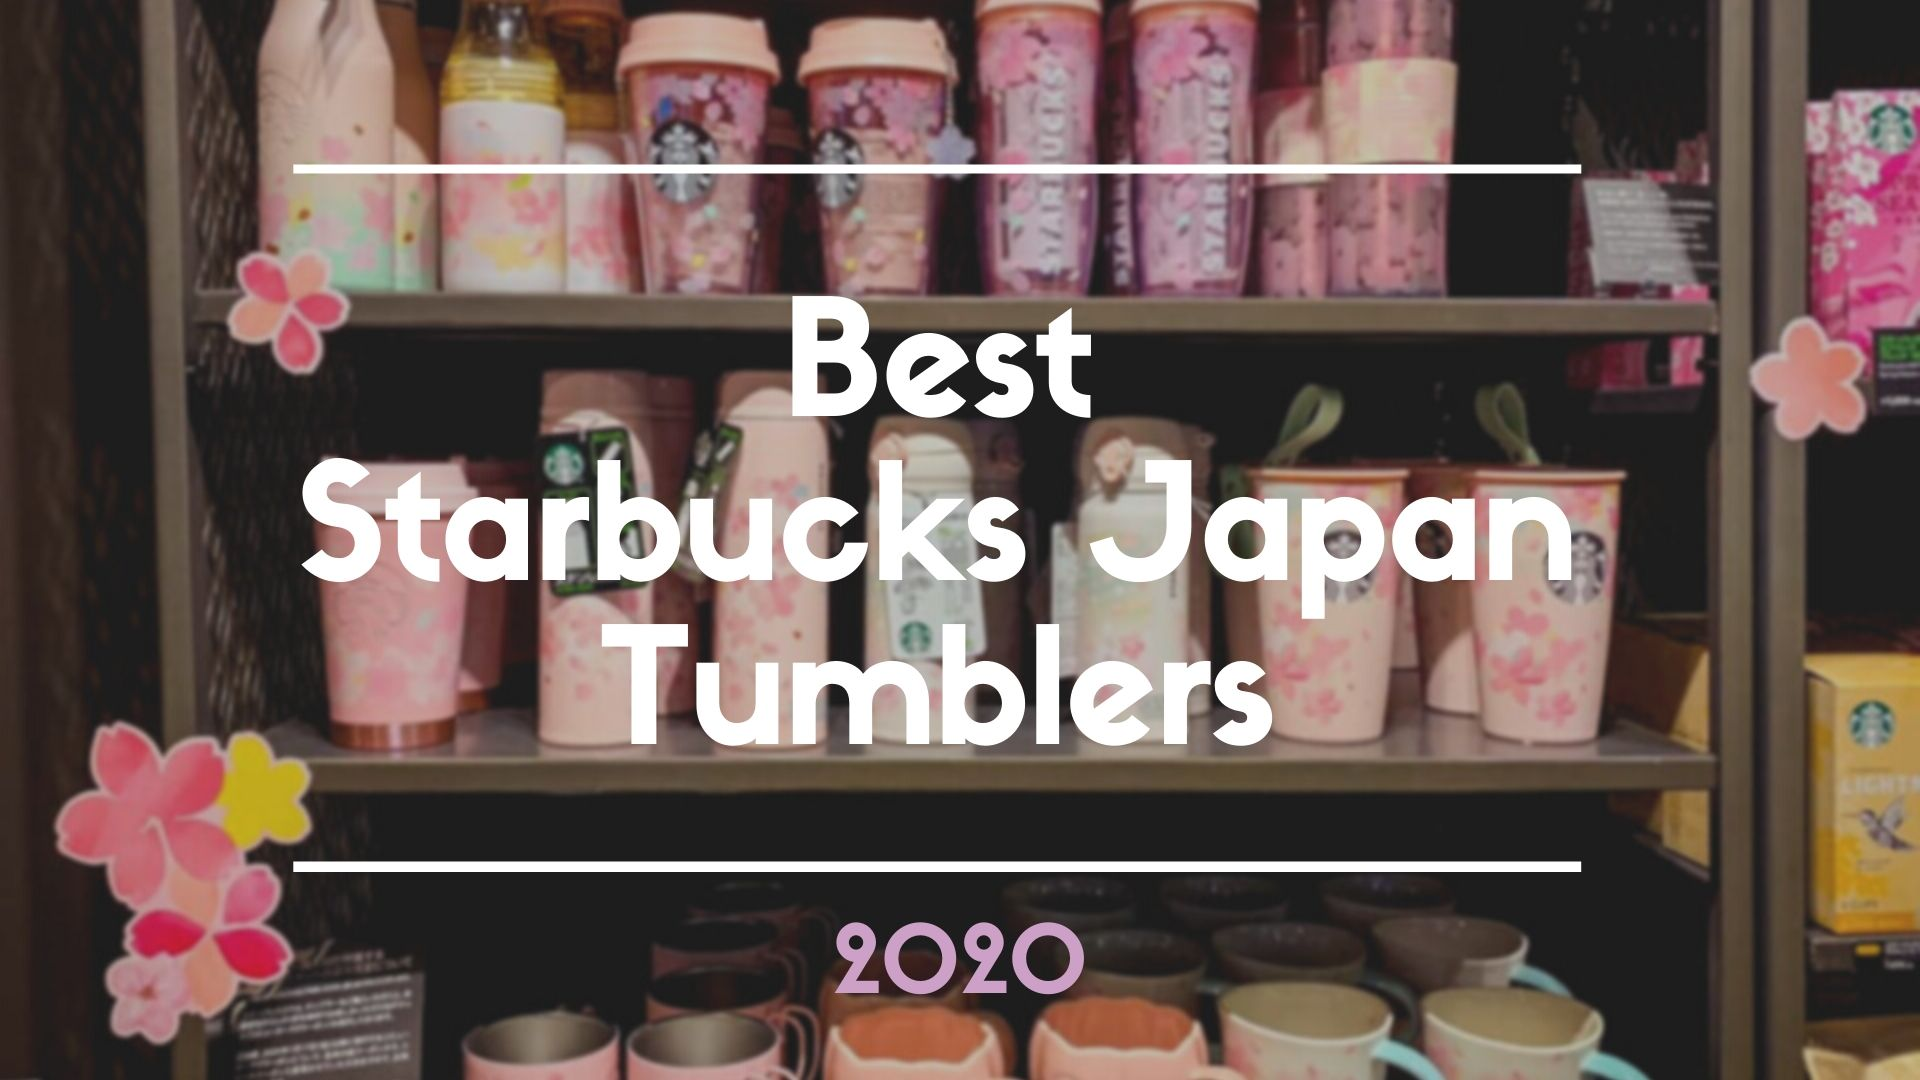 Best Starbucks Japan Tumblers to Buy in 2020